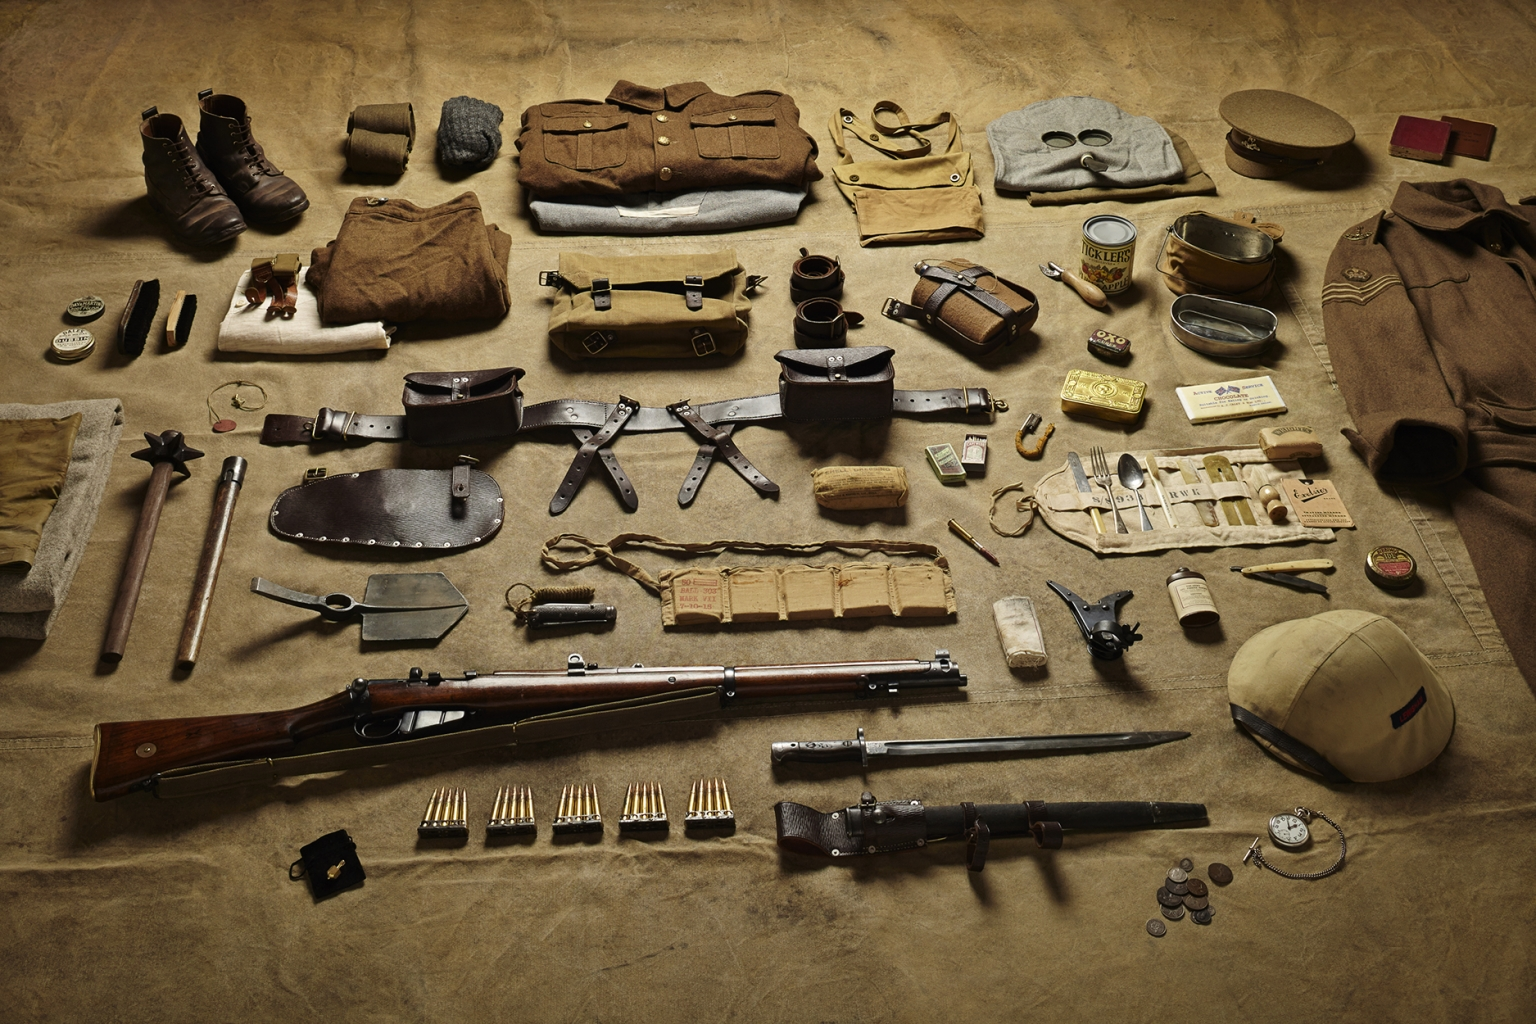 Sergeant, Battle of the Somme, 1916 - Soldiers' Inventories - Photo by Thom Atkinson